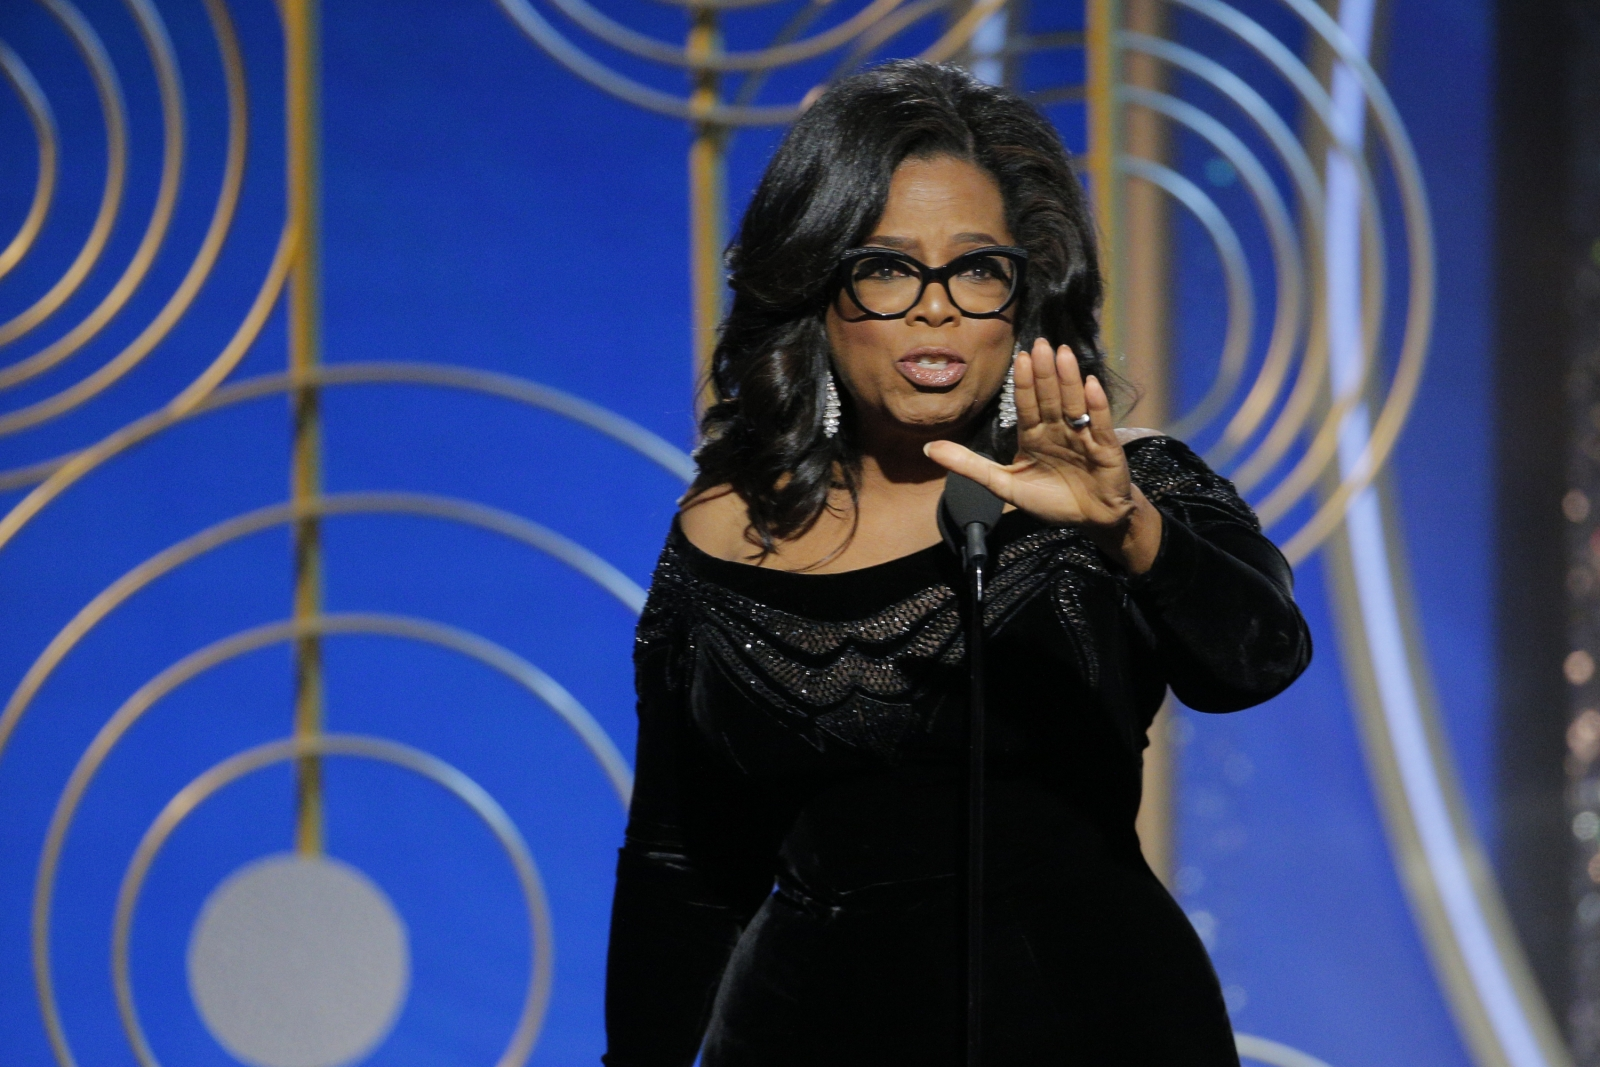 The style evolution of Oprah Winfrey